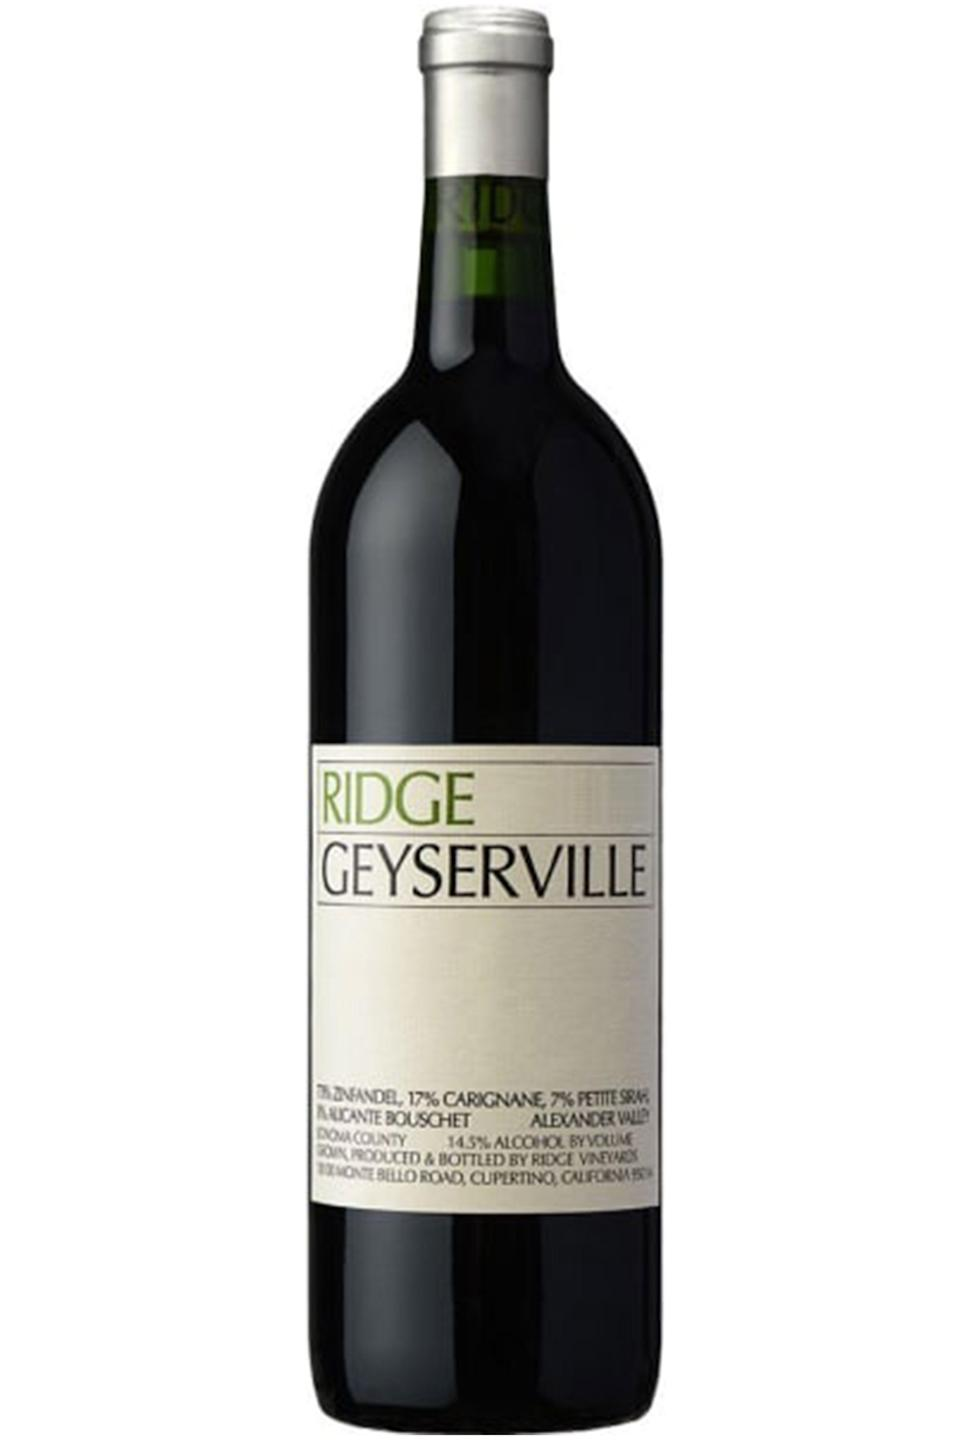 """<p>wine.com</p><p><strong>$41.99</strong></p><p><a href=""""https://go.redirectingat.com?id=74968X1596630&url=https%3A%2F%2Fwww.wine.com%2Fproduct%2Fridge-geyserville-2017%2F509122&sref=https%3A%2F%2Fwww.townandcountrymag.com%2Fleisure%2Fdrinks%2Fg32392235%2Fbest-red-wine%2F"""" rel=""""nofollow noopener"""" target=""""_blank"""" data-ylk=""""slk:Shop Now"""" class=""""link rapid-noclick-resp"""">Shop Now</a></p><p>Lambrecht likes this Zinfandel from Ridge, a winery that he calls """"a master blender, and in particular, king of Zinfandel blends.""""</p>"""